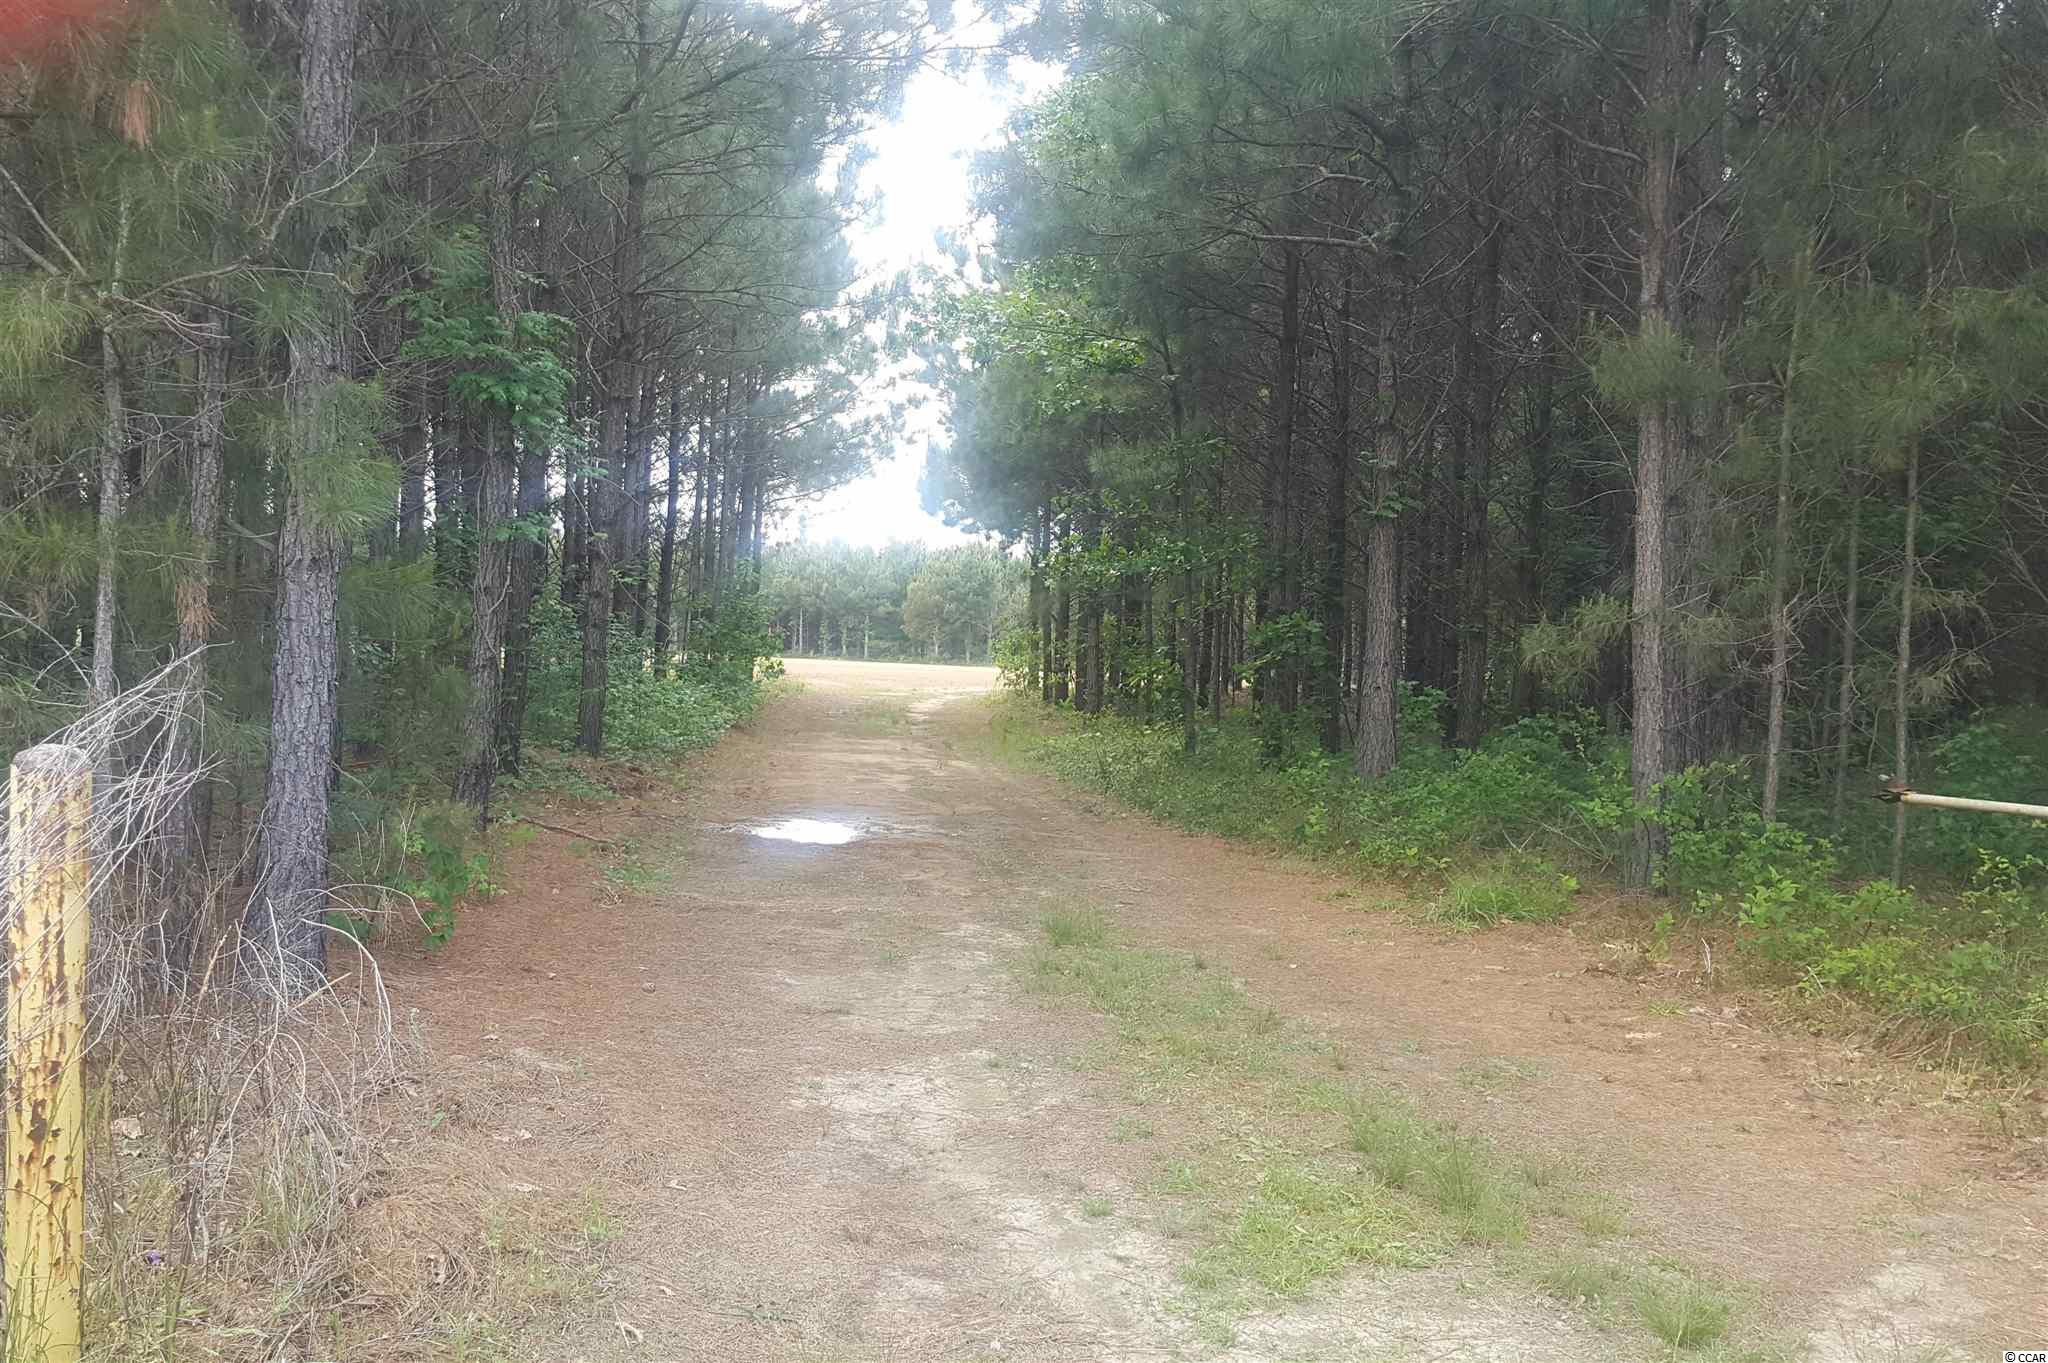 Take a look at this 31 acre property, it has 15 acres of pine trees planted about 10 year ago which will be a great investment in the future.  It's a great place to find turkeys and deer for the hunter in your family or just to watch them roam around.  It's such a peaceful place just waiting on you to enjoy.